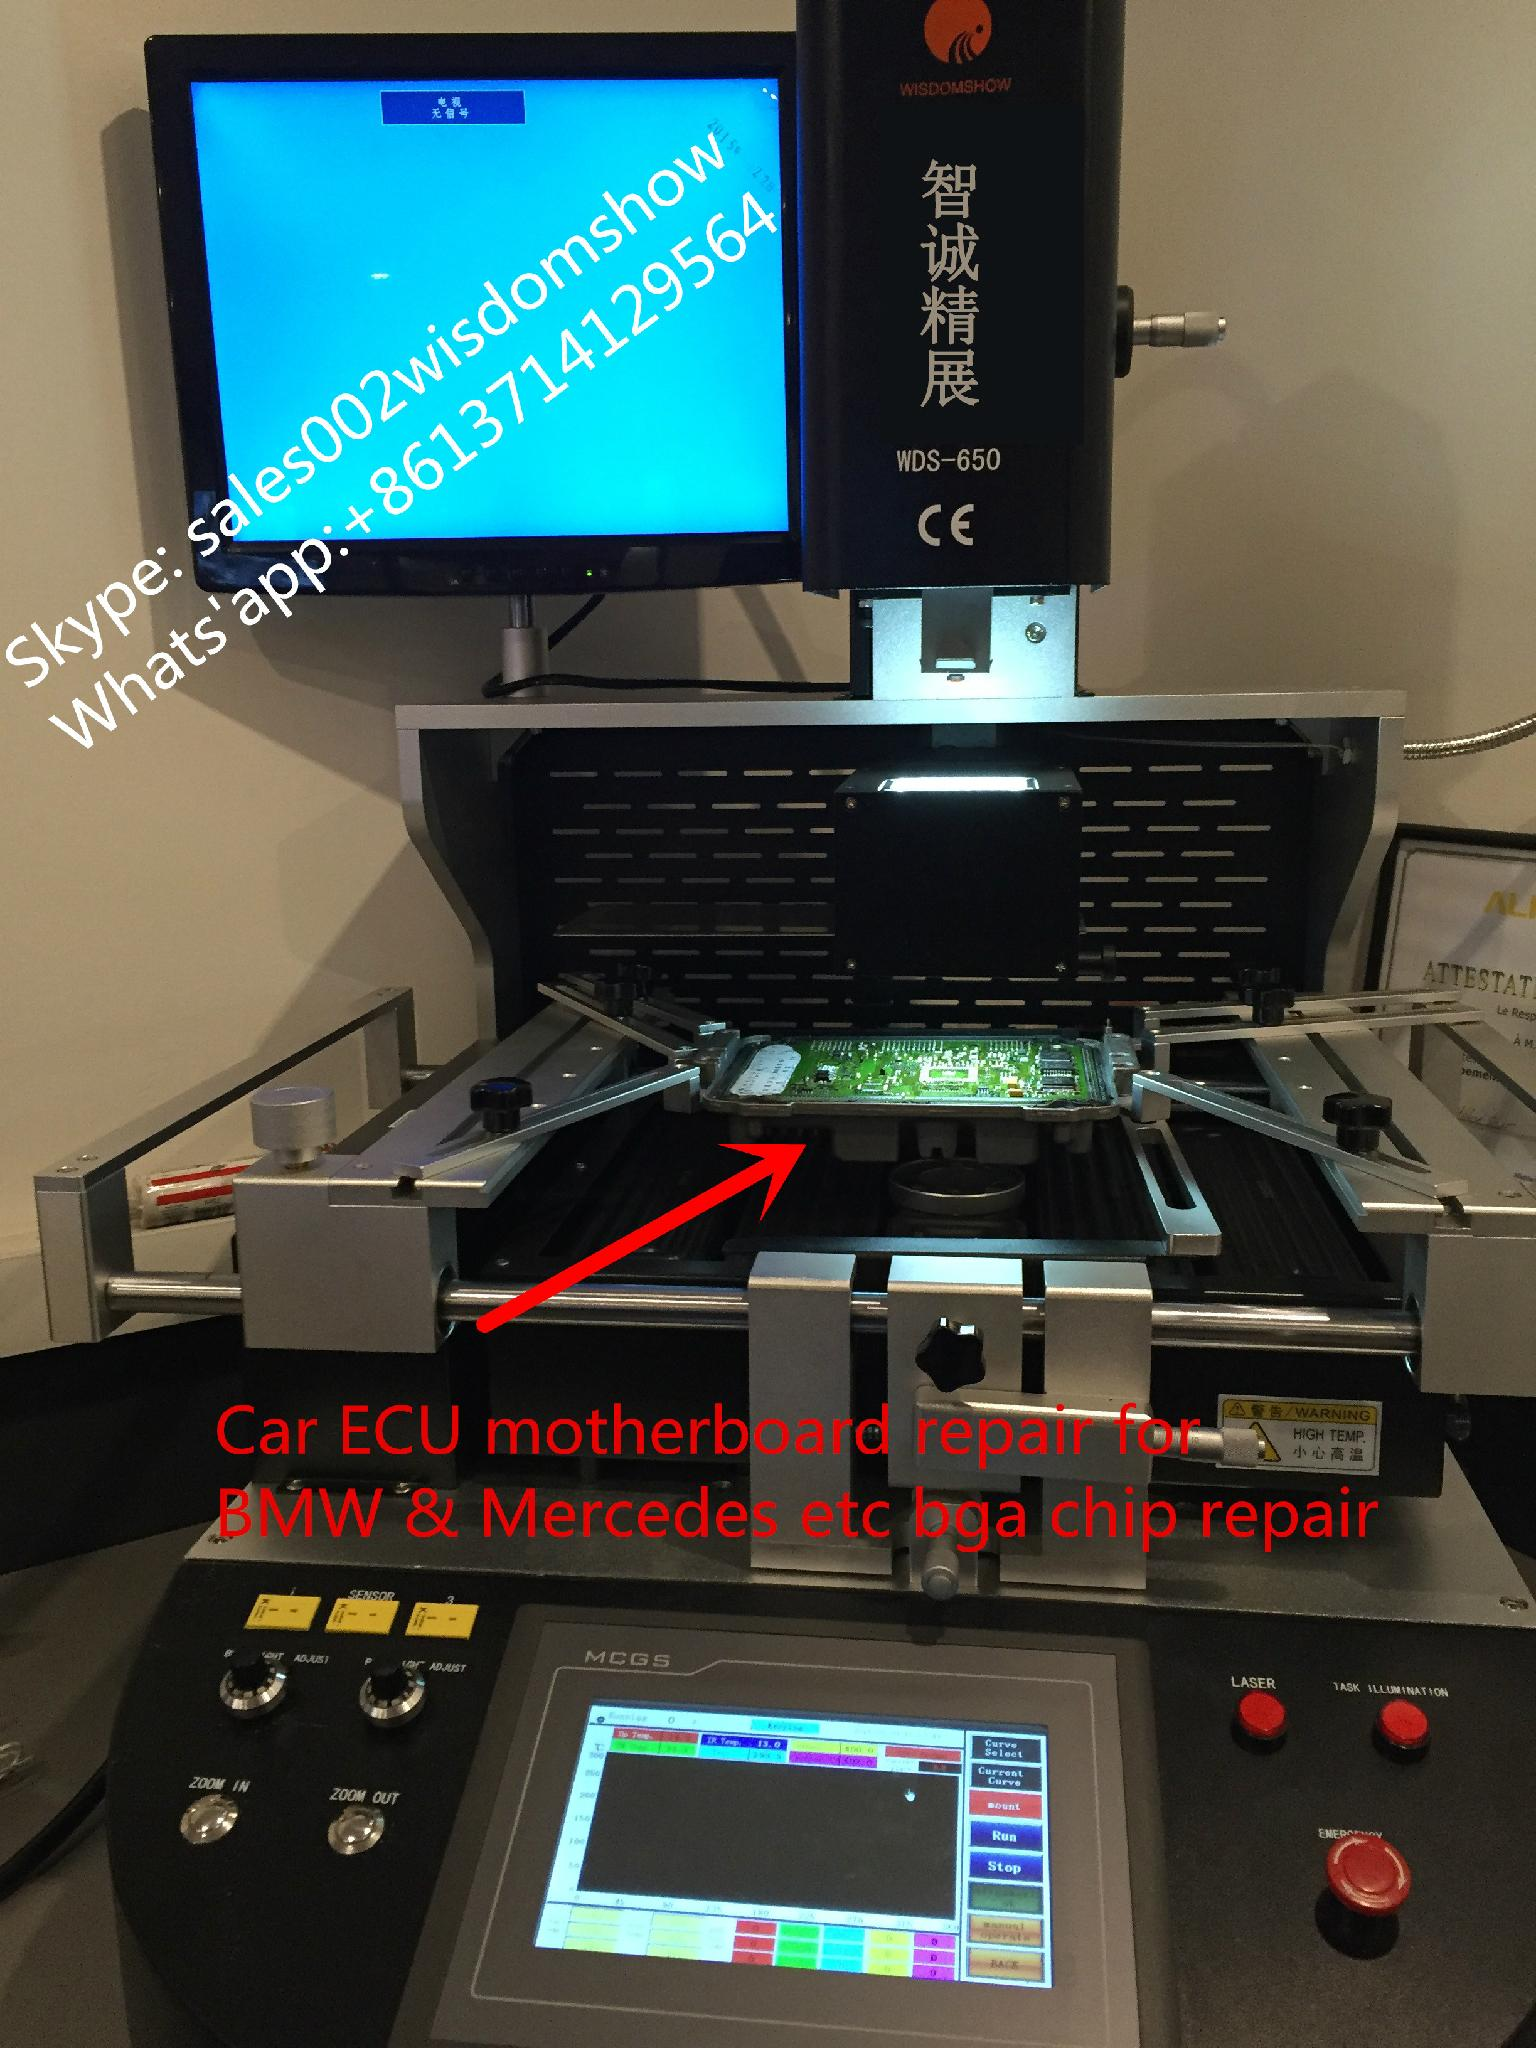 Gear Drive control ecu motherboard rework station WDS-650 With free training  5